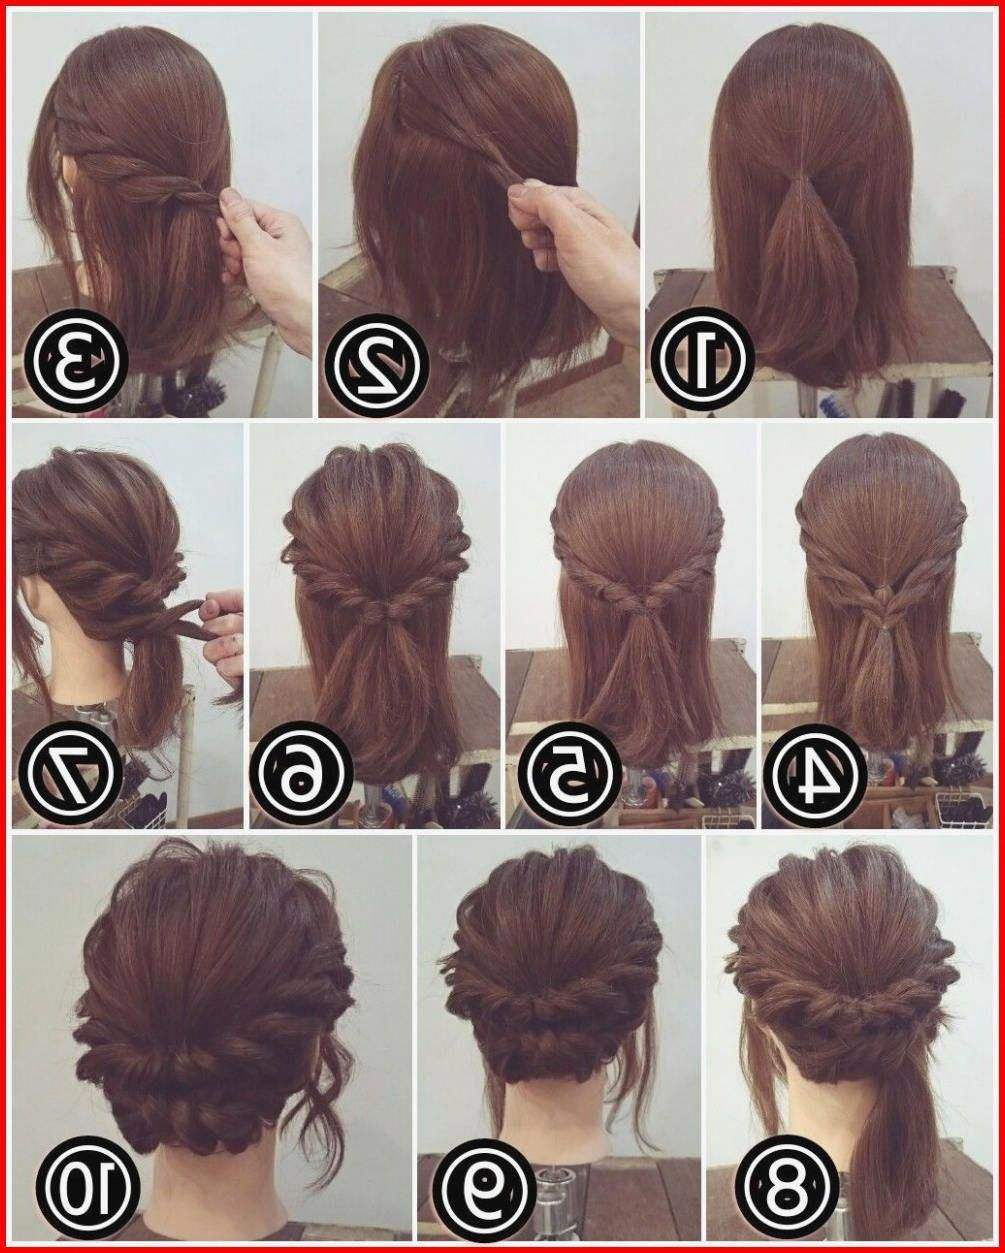 the tuck and cover cute hairstyles for long hair, one of the